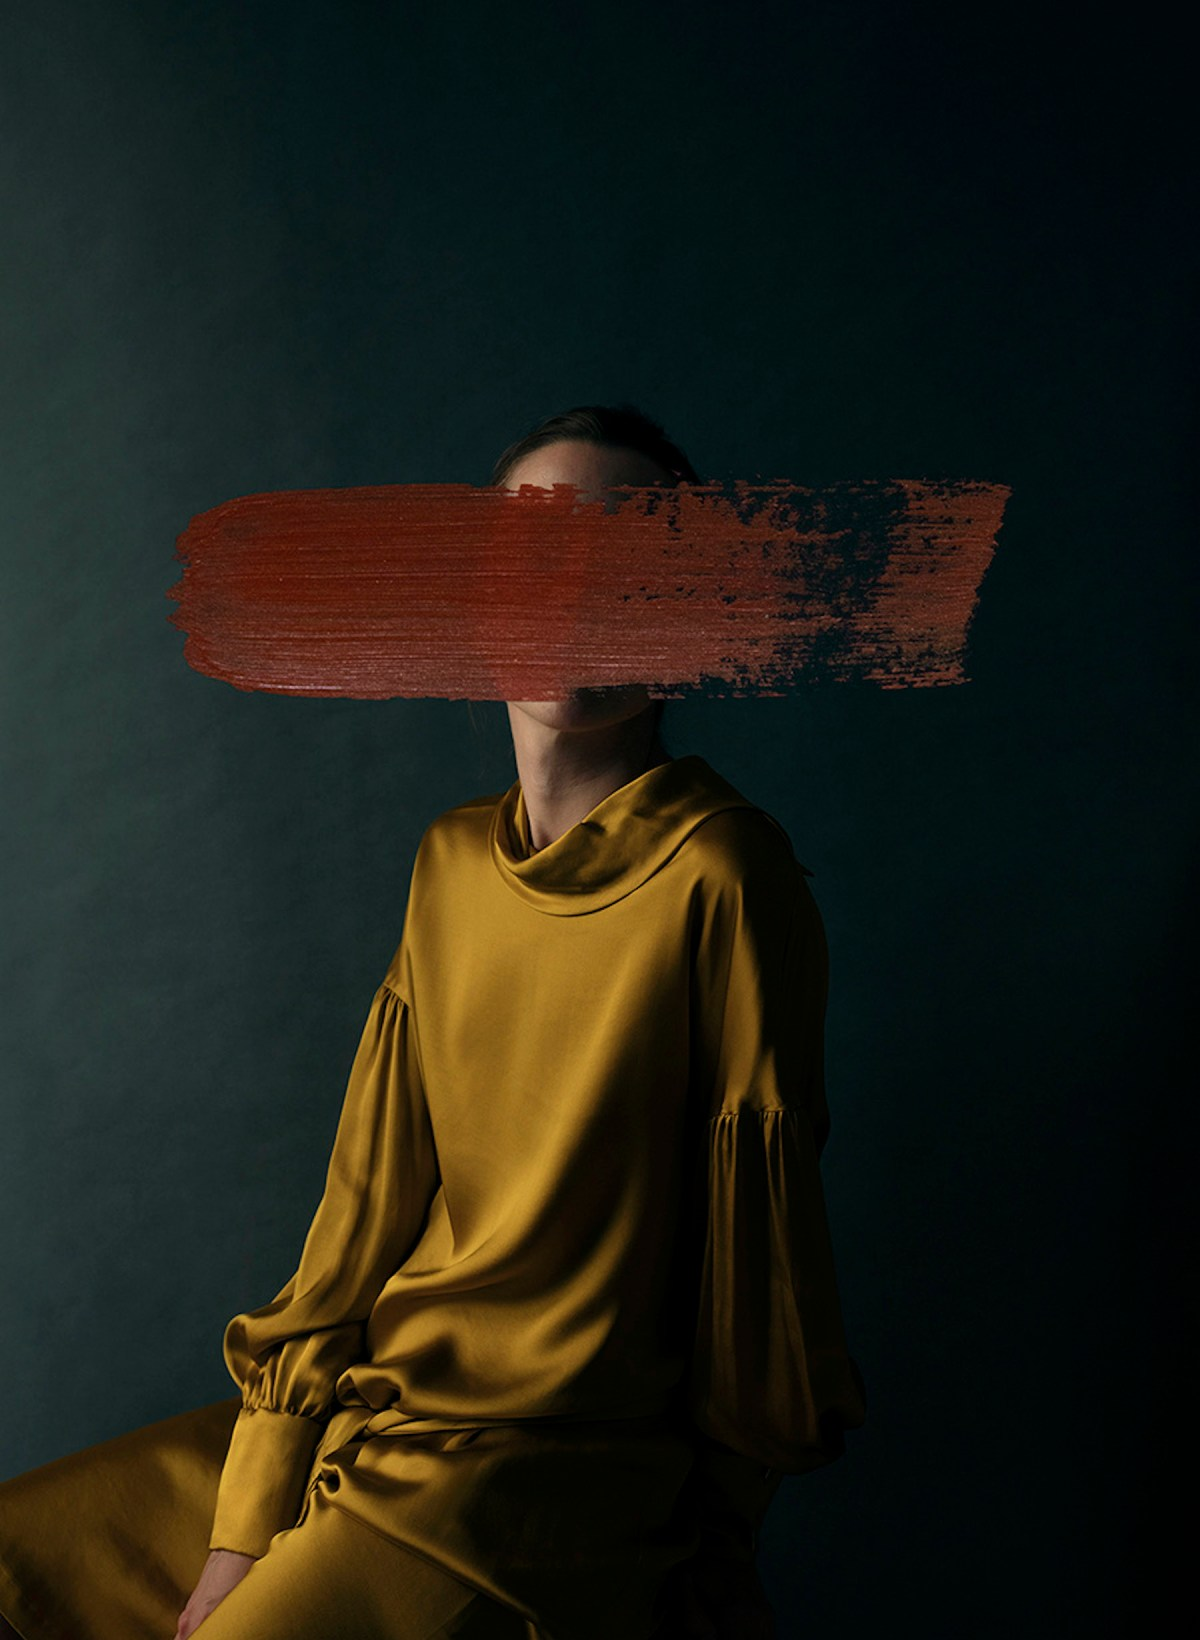 ignant-photography-andrea-torres-balaguer-the-unknown-06